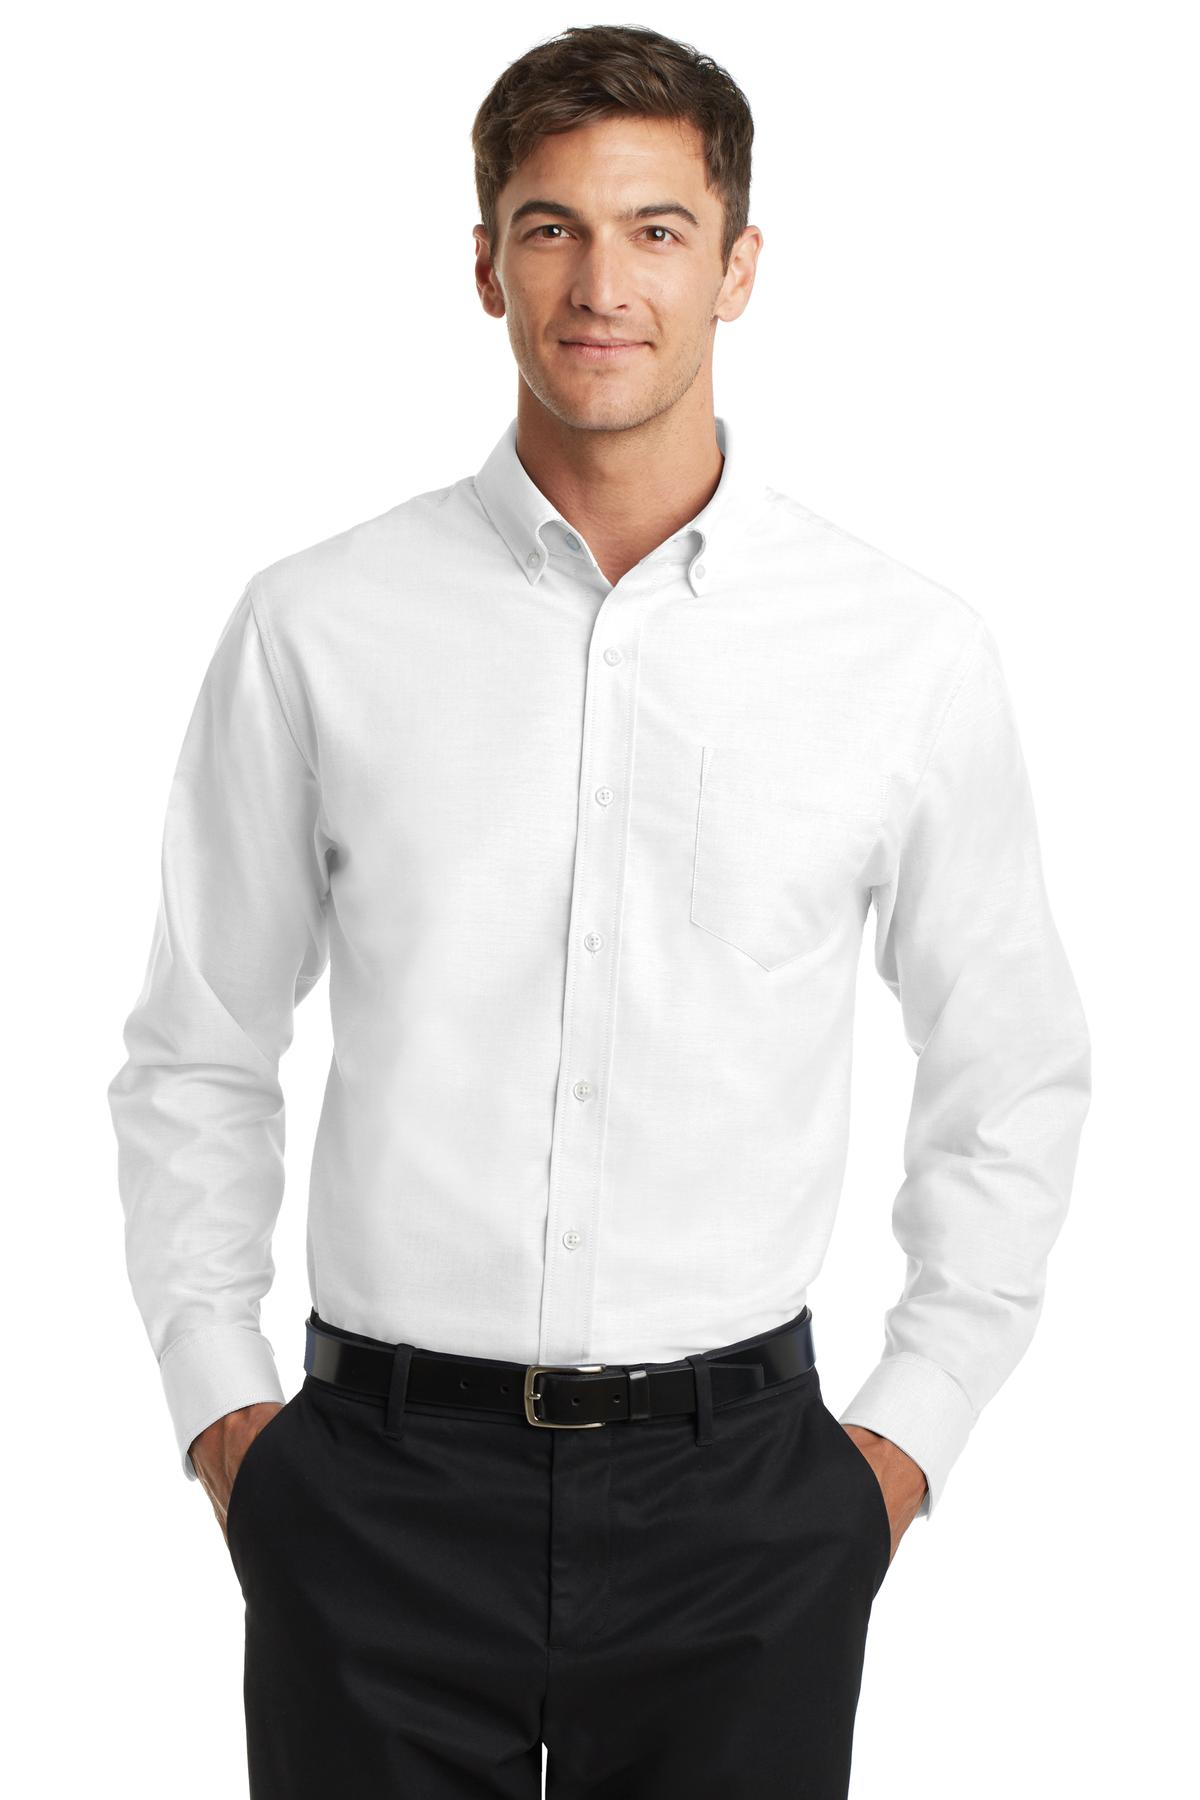 Royal Port Authority Tall Silk Touch Long Sleeve Polo.